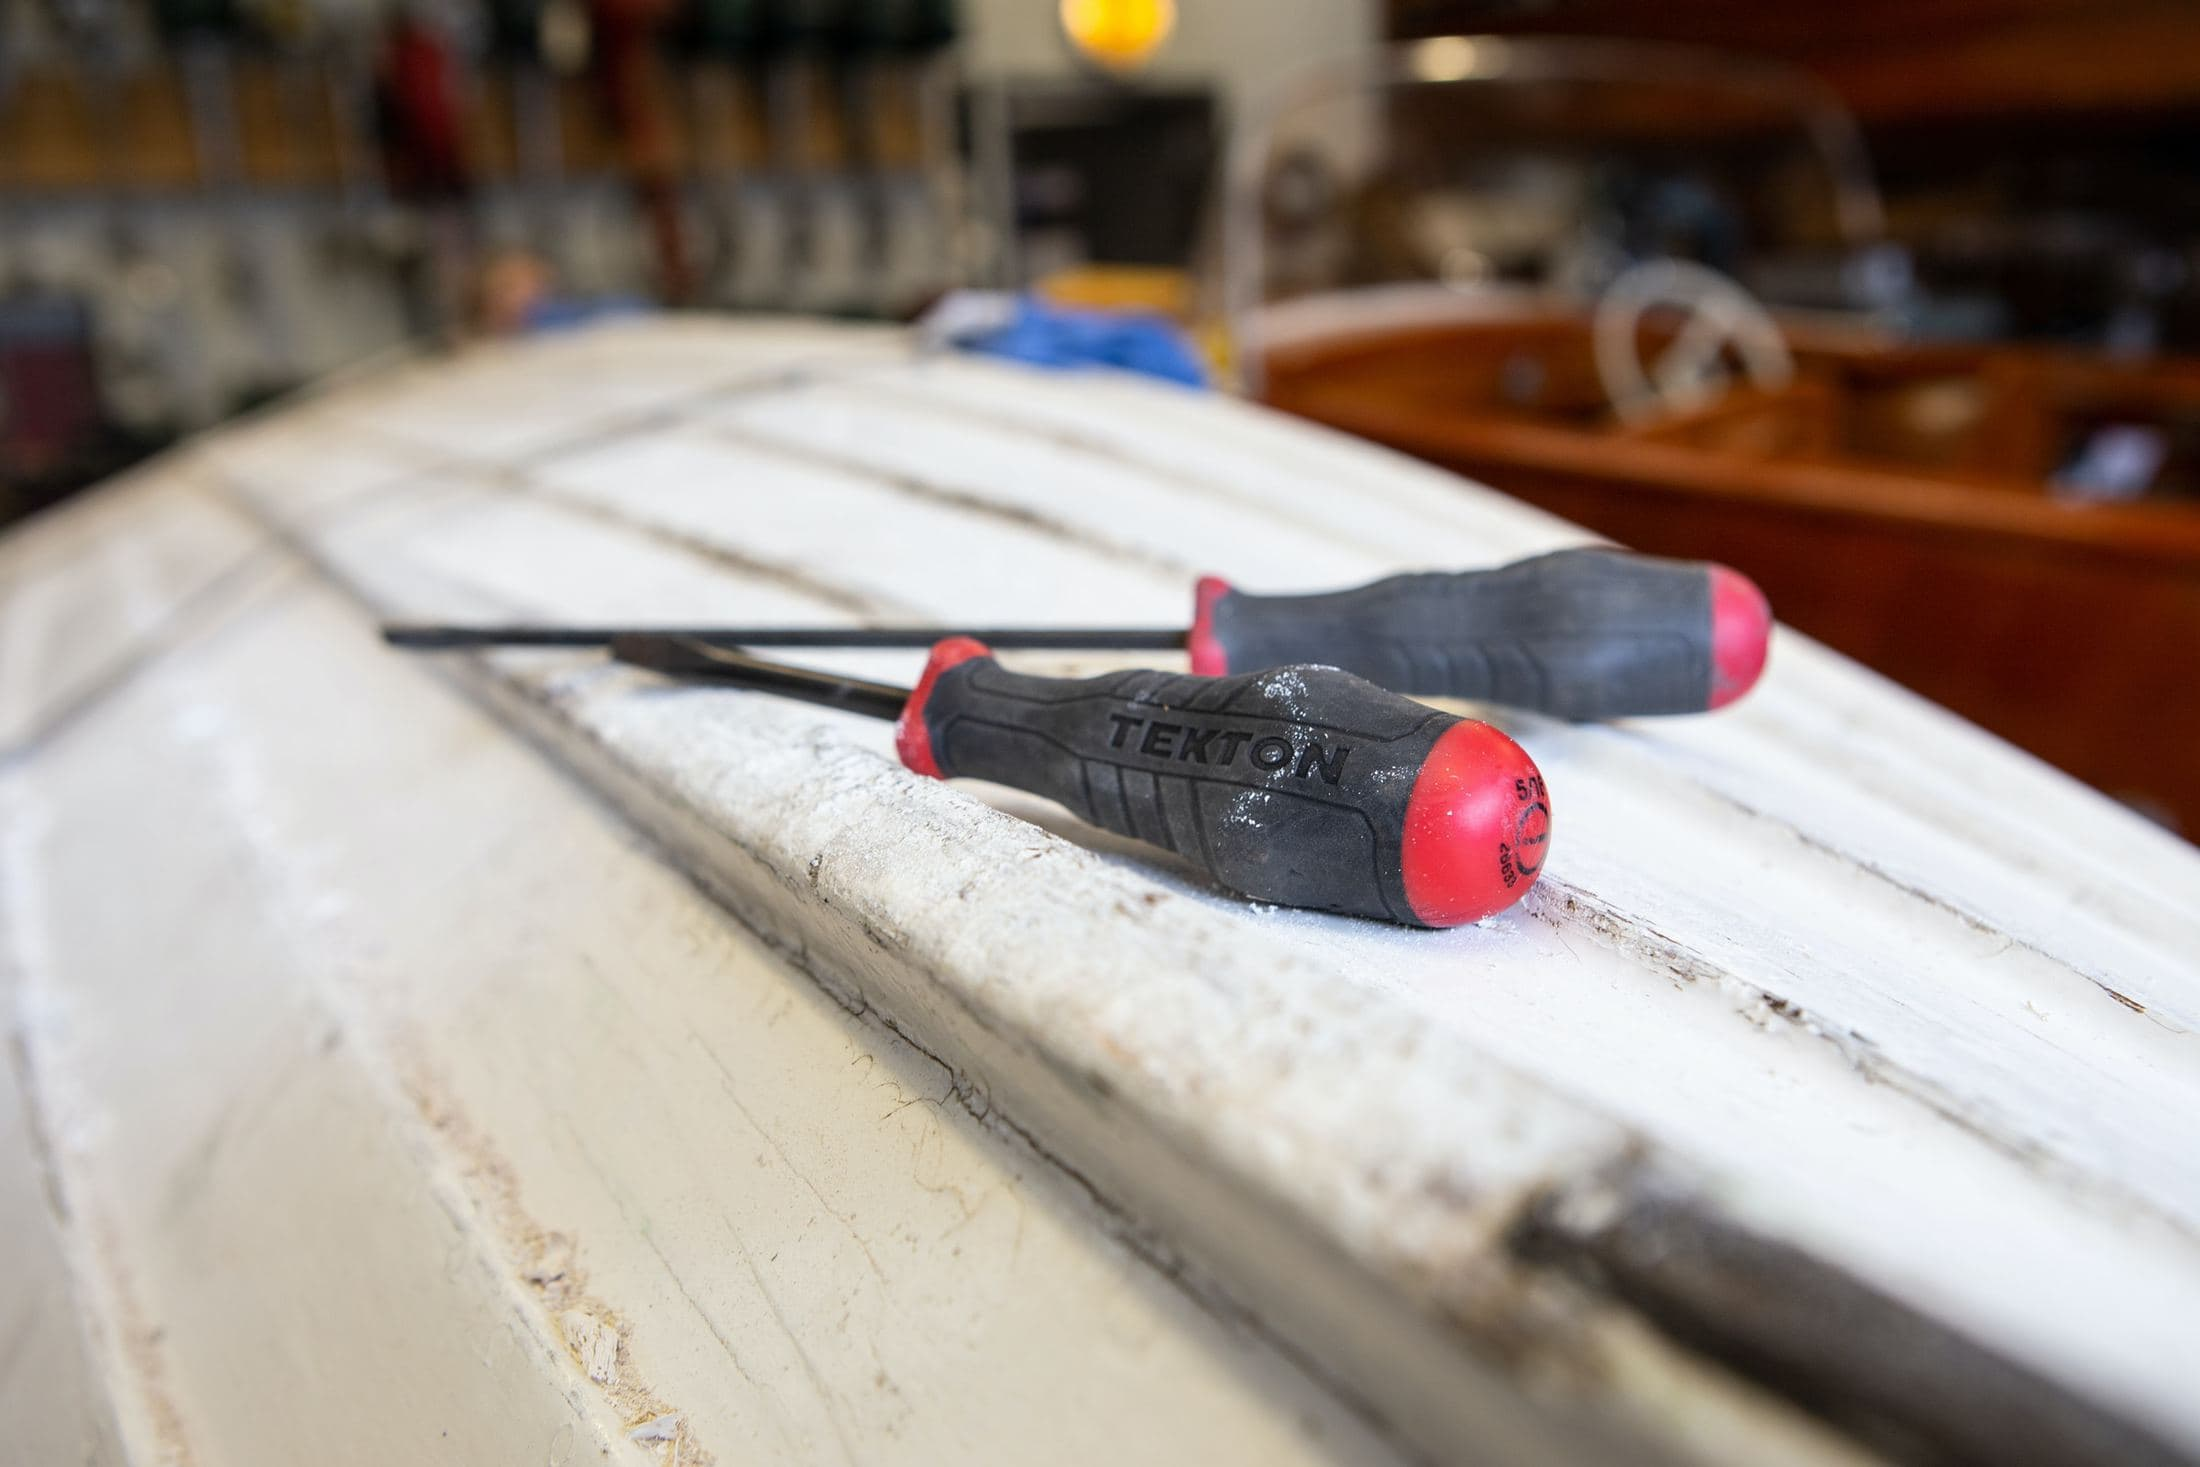 black and red hand tool on white table